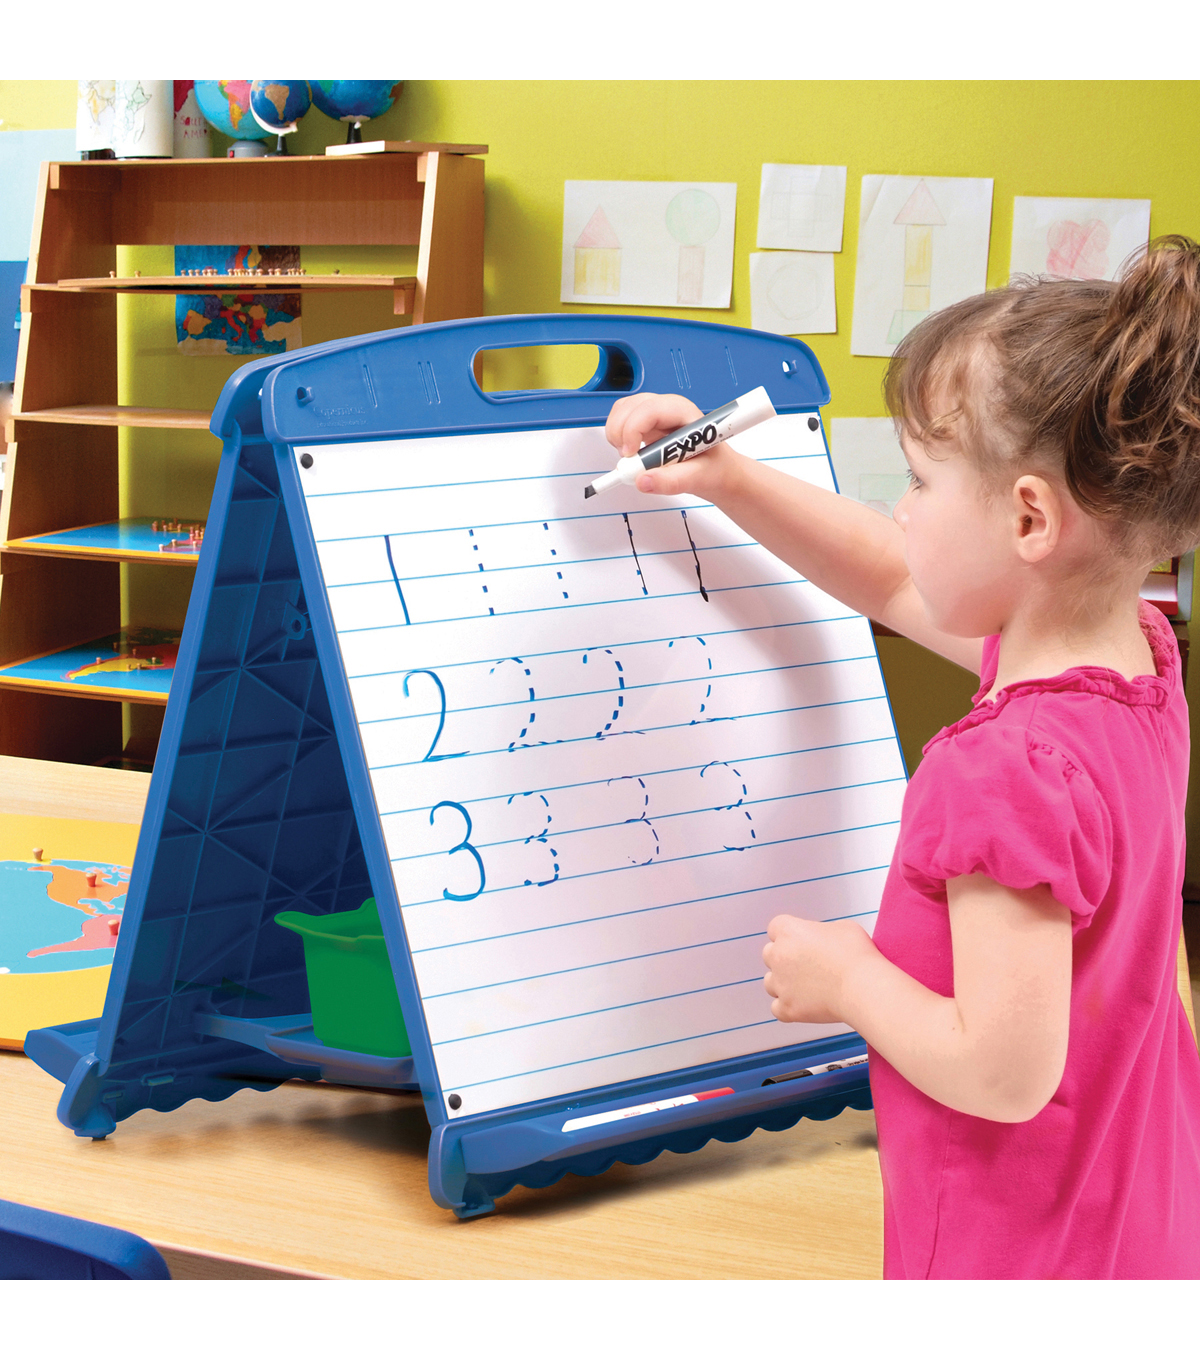 Tabletop Easel with Dry Erase Boards, Pocket Chart, and Storage Tubs